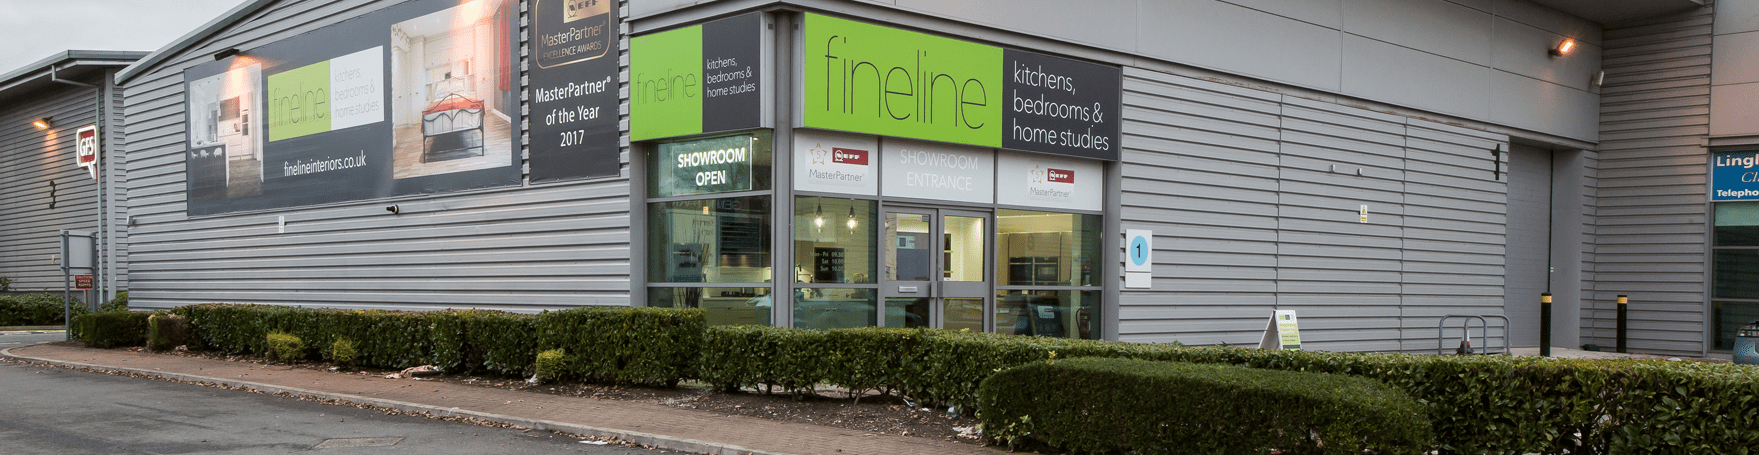 fineline Warrington kitchen showroom